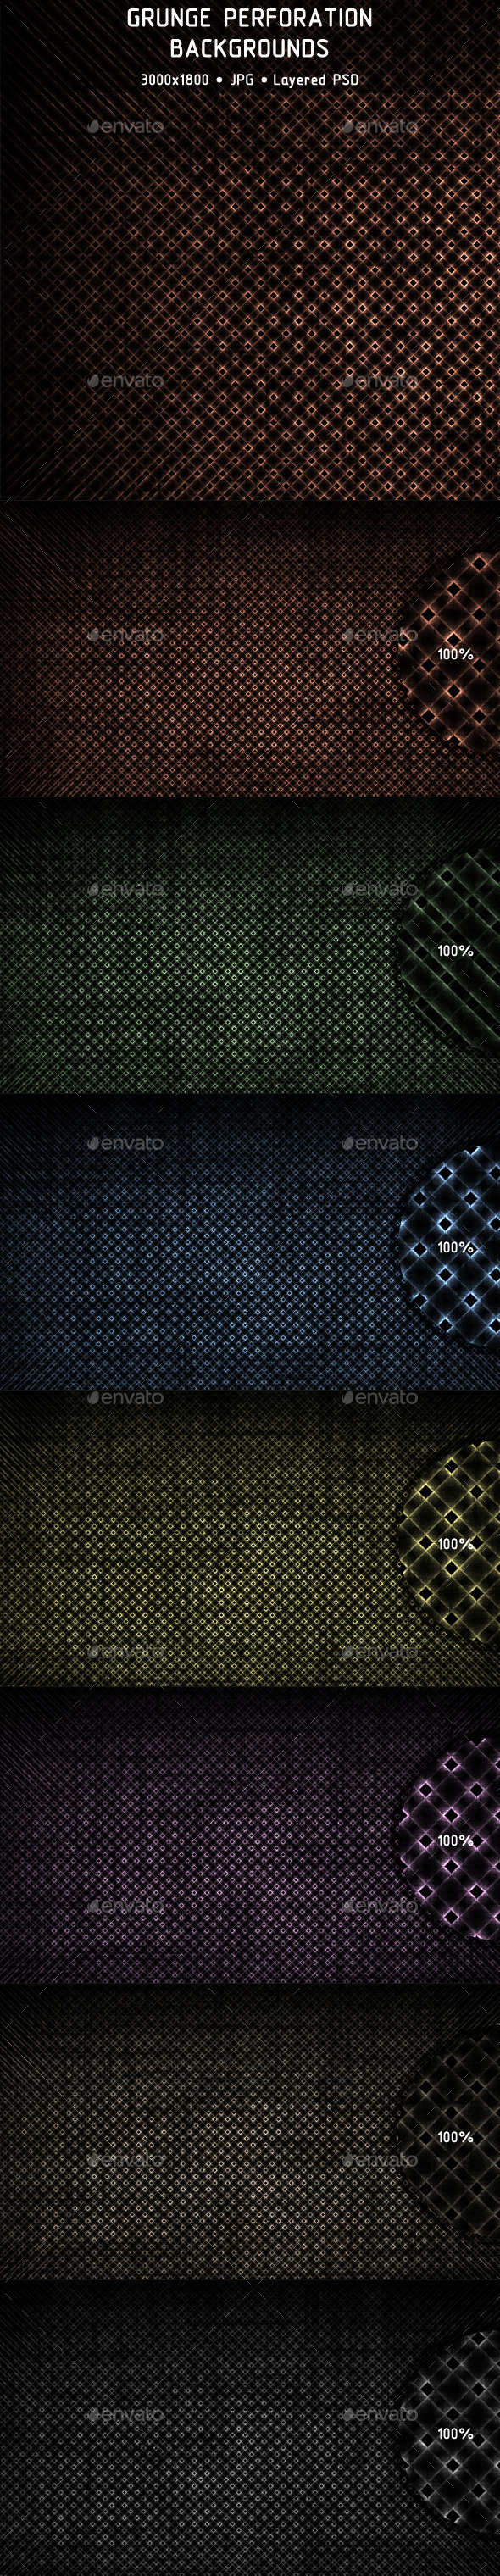 Grunge Perforation Backgrounds - Tech / Futuristic Backgrounds